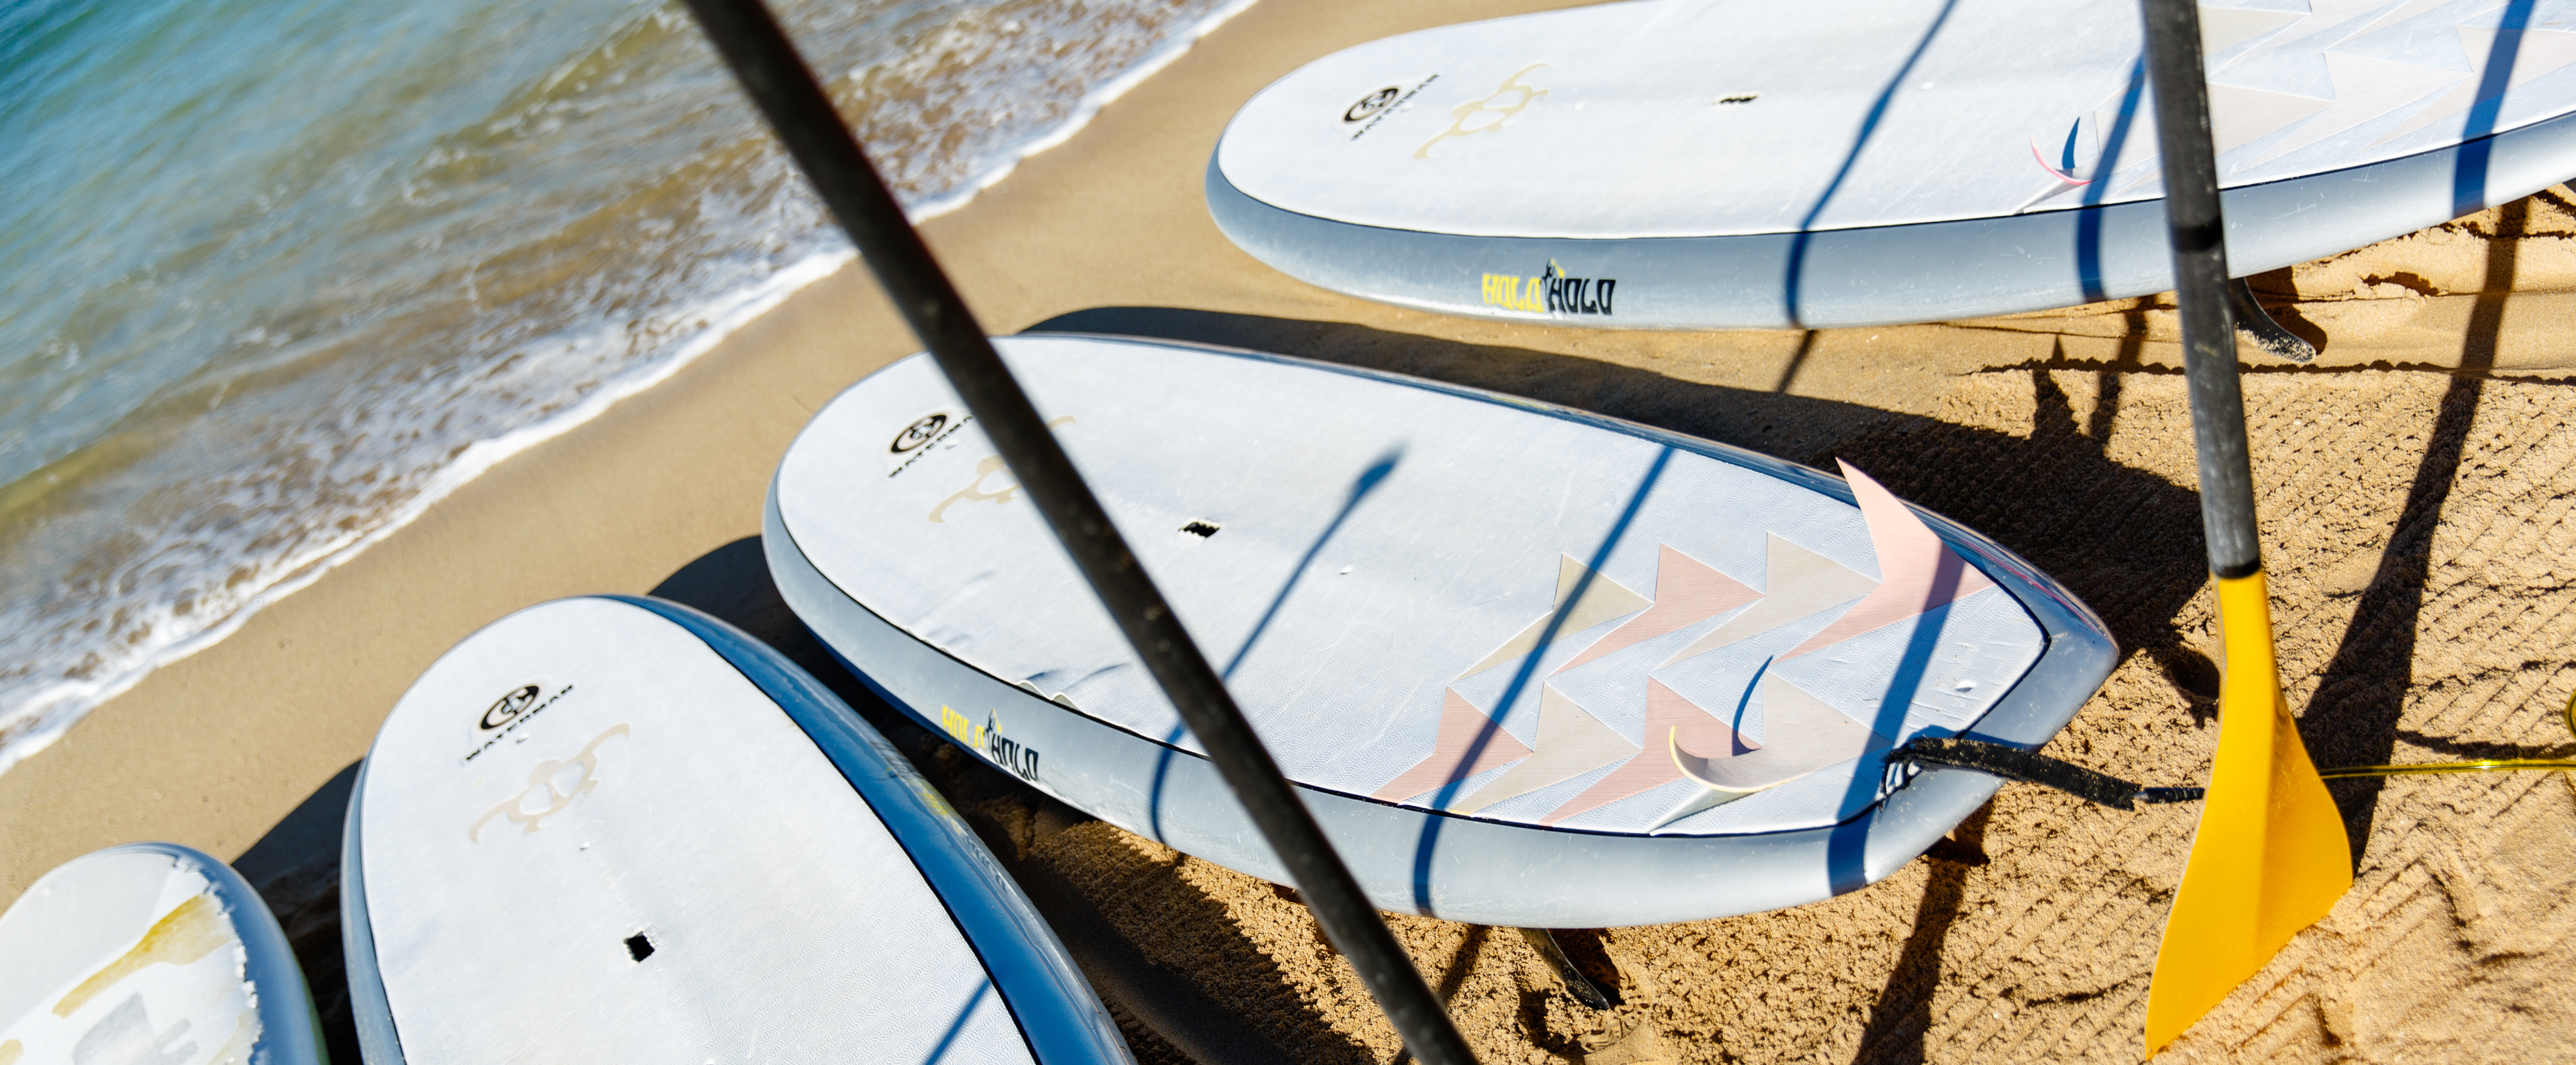 Four stand-up paddleboards with oars lined up on the sand at the water's edge